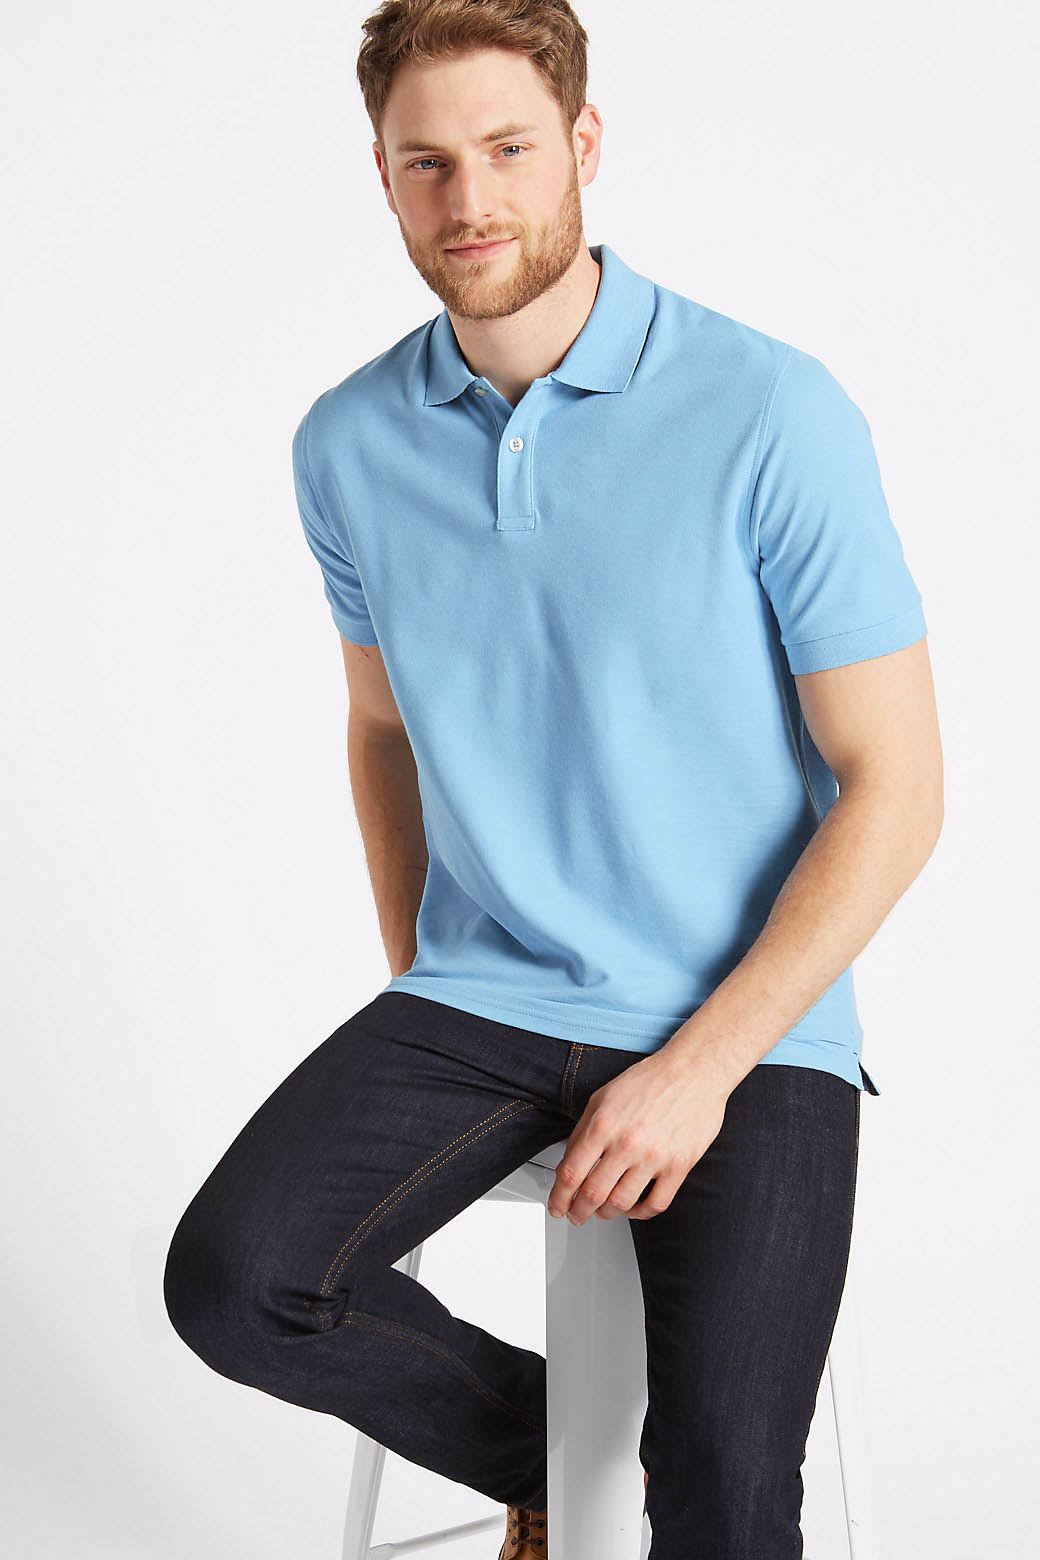 3XL Ex Marks and Spencer Mens Cotton Pique Polo Shirt NEW Sizes S